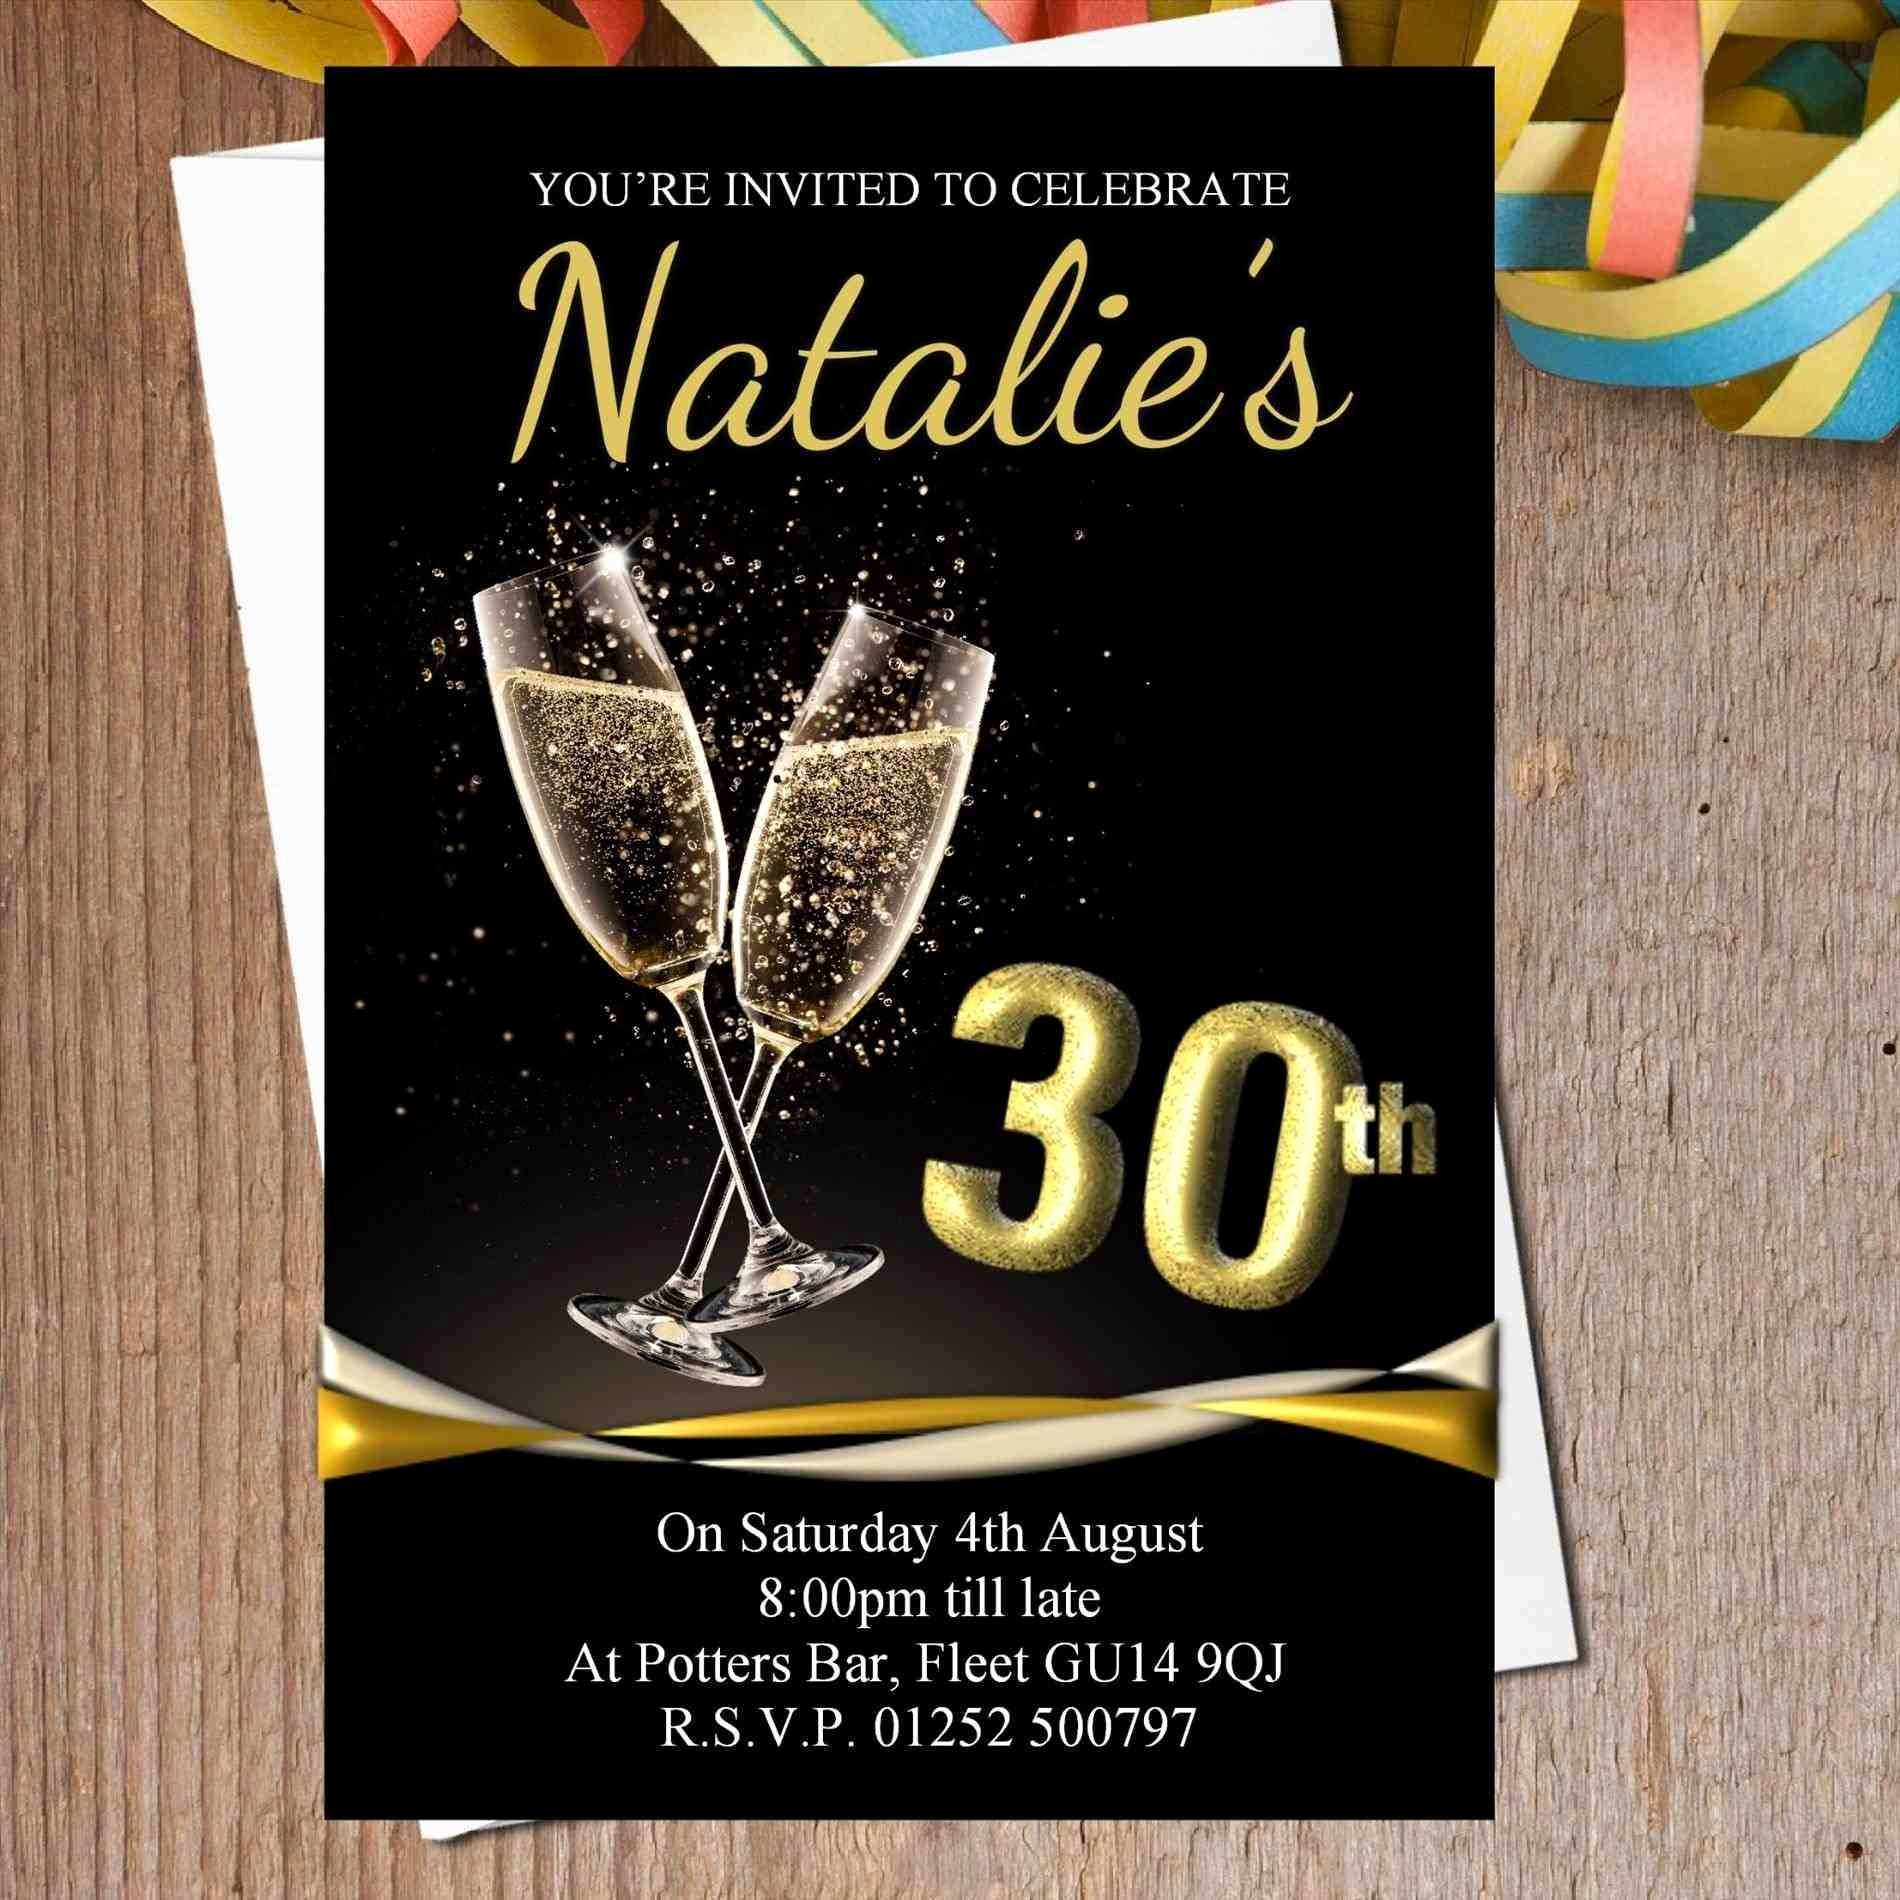 30th birthday invitation templates free download ; happy-30th-birthday-images-for-him-inspirational-30th-birthday-invitation-templates-free-download-30th-birthday-of-happy-30th-birthday-images-for-him